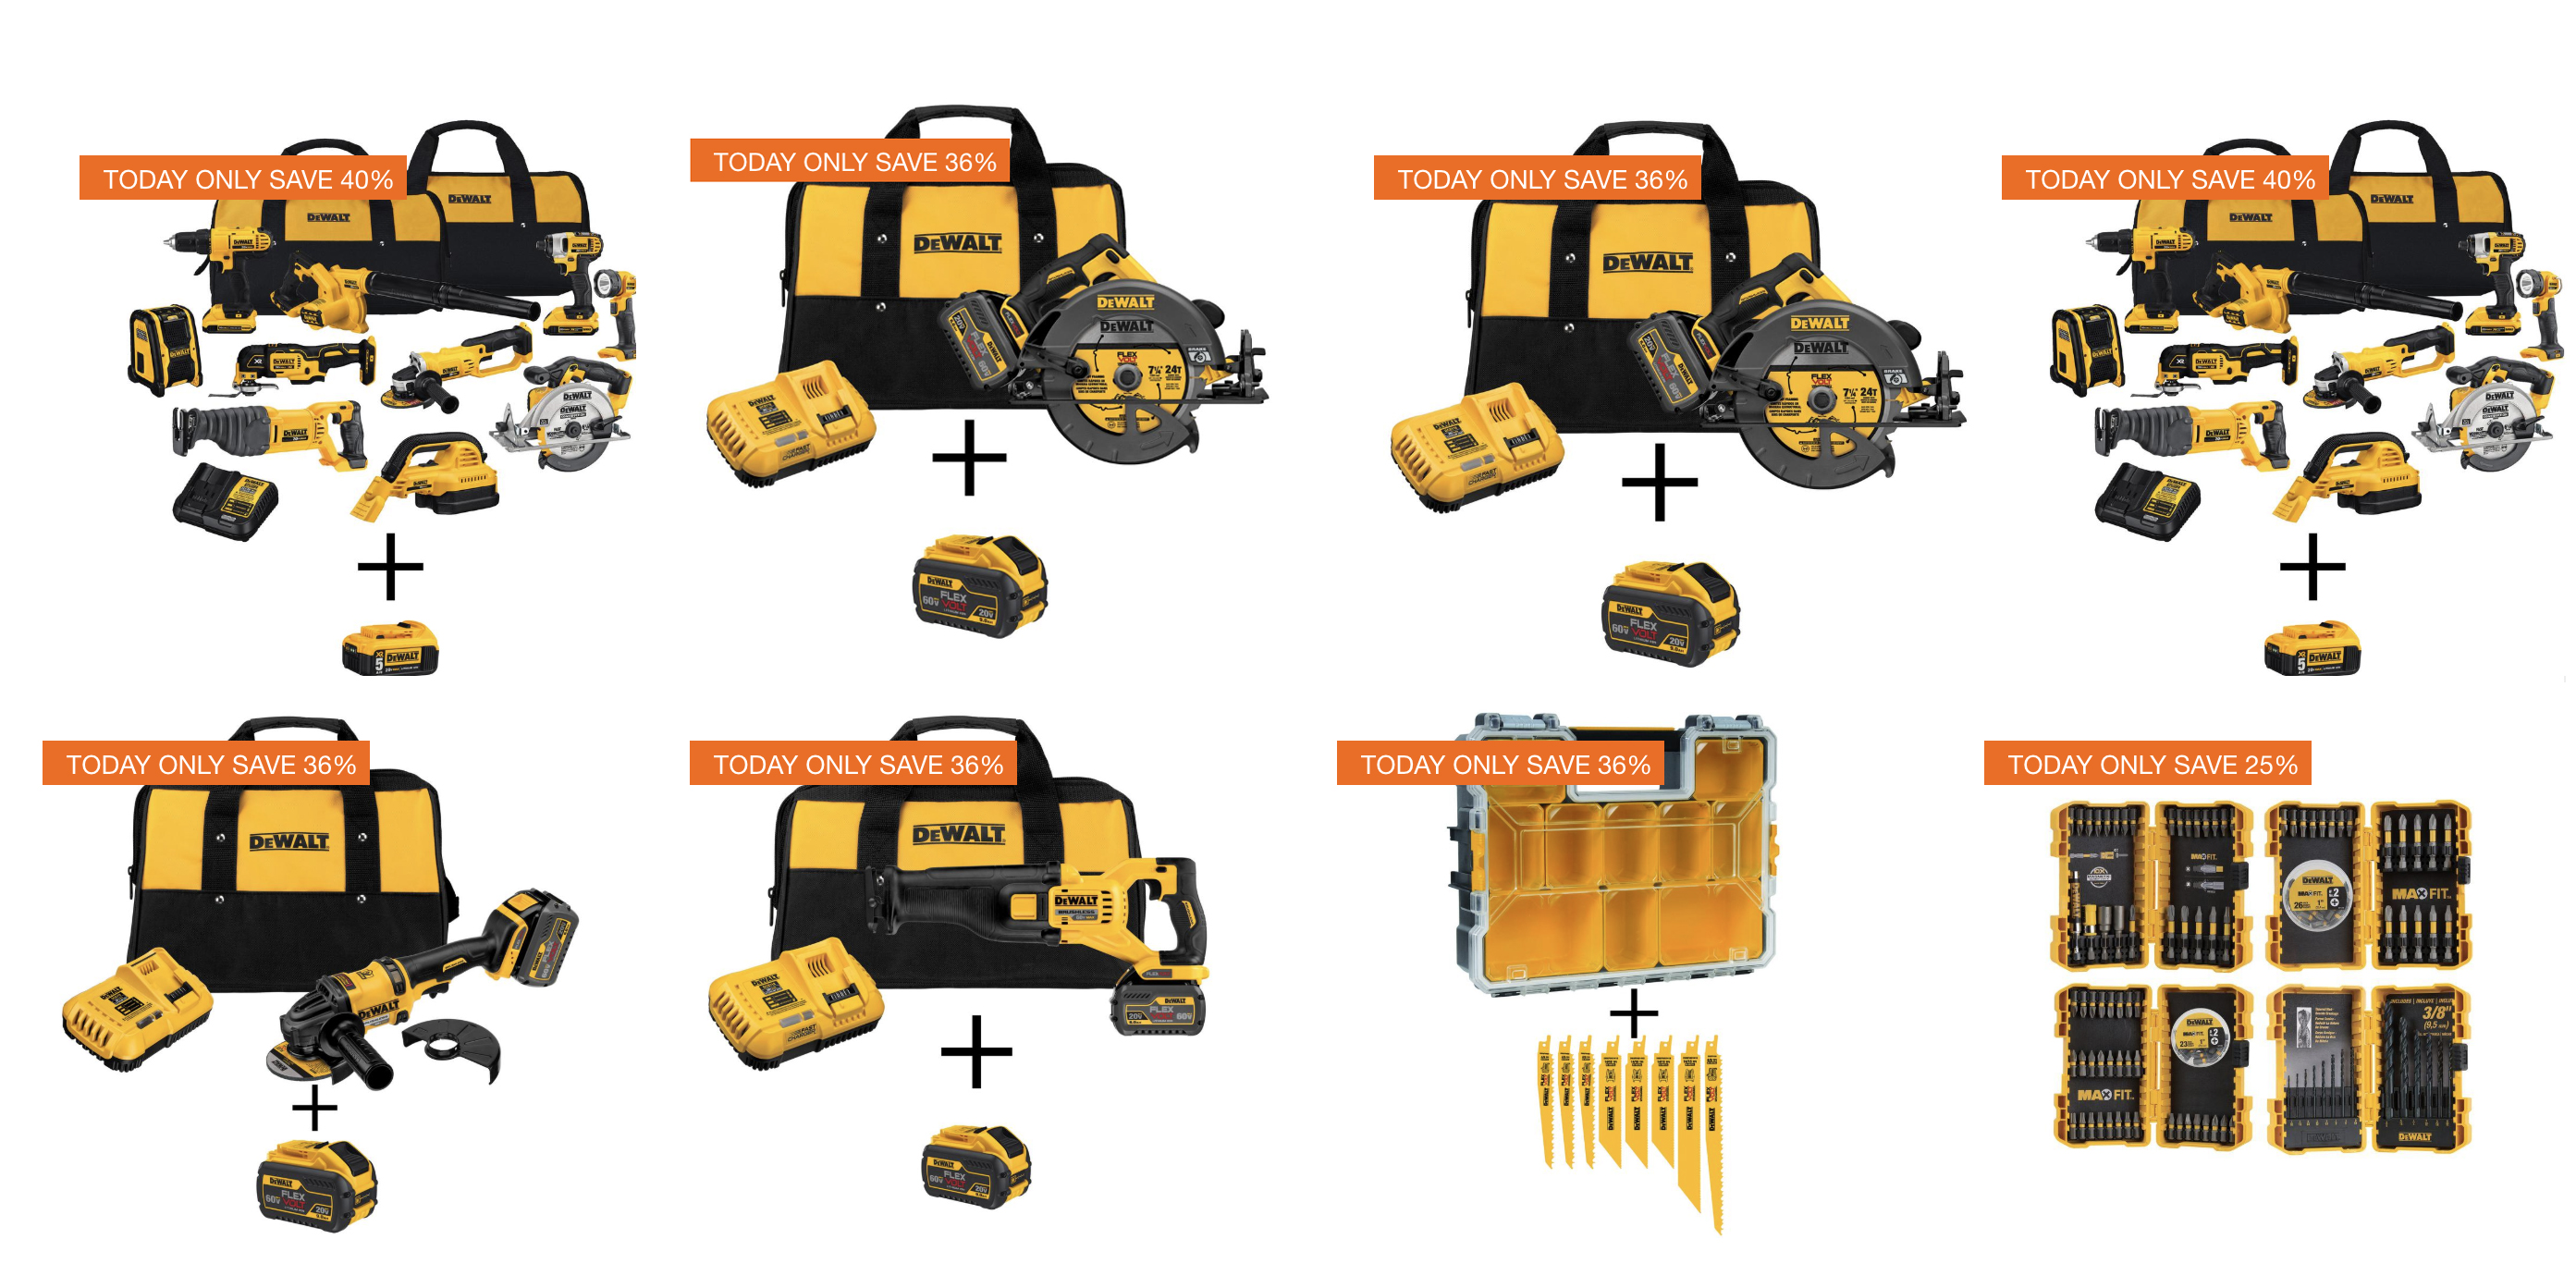 Home Depot 1-Day DEWALT Tool Sale from $25: Saws, multi-tool bundles, accessories and more